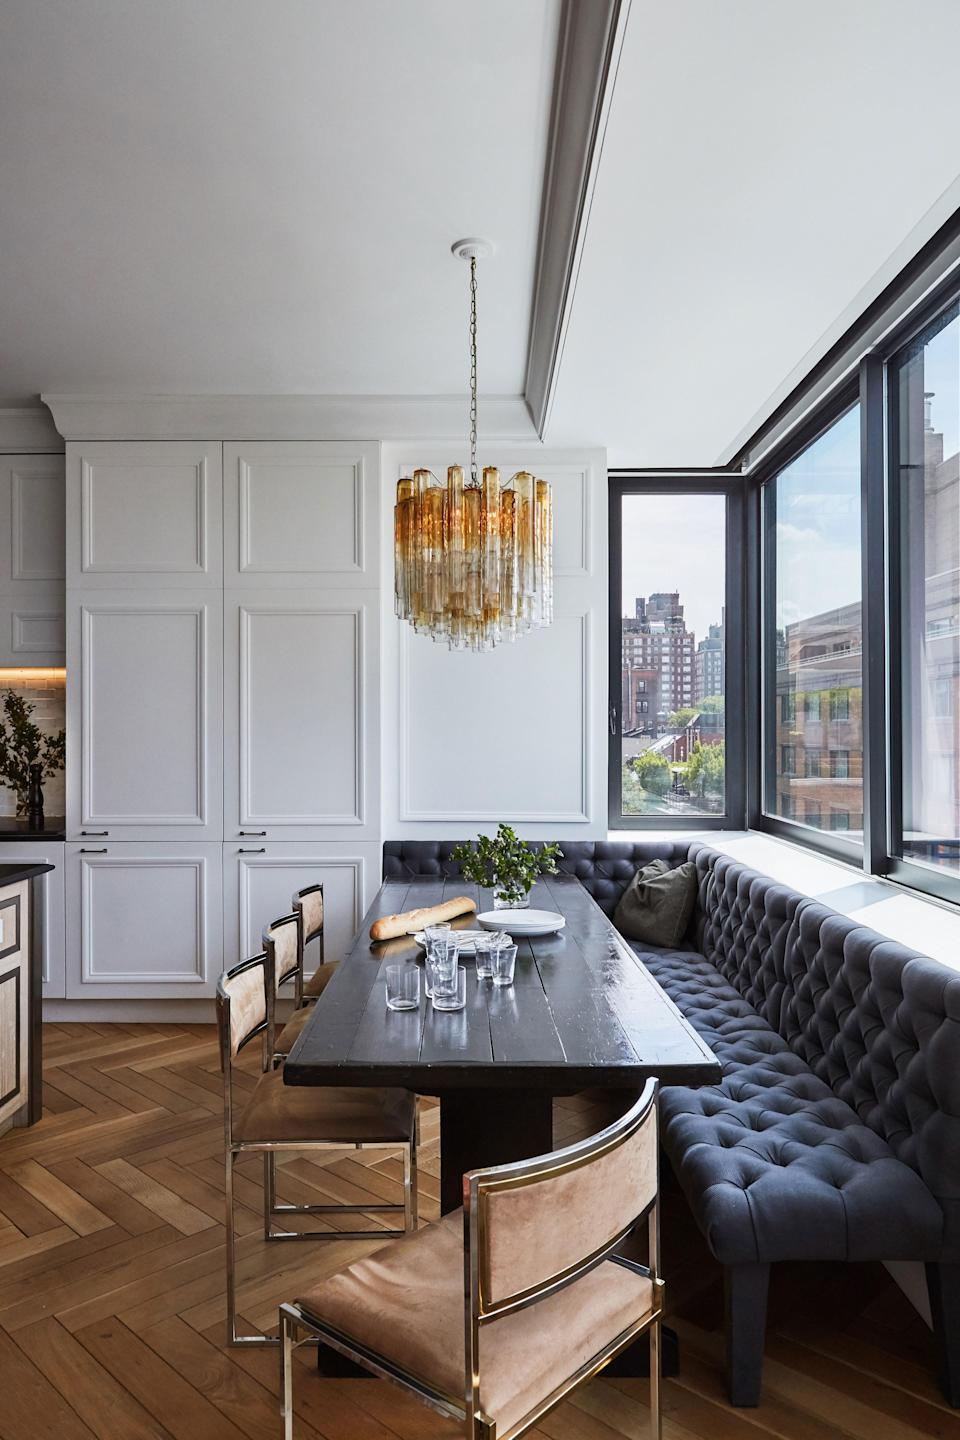 In this dining area, a Venini chandelier shines bright.